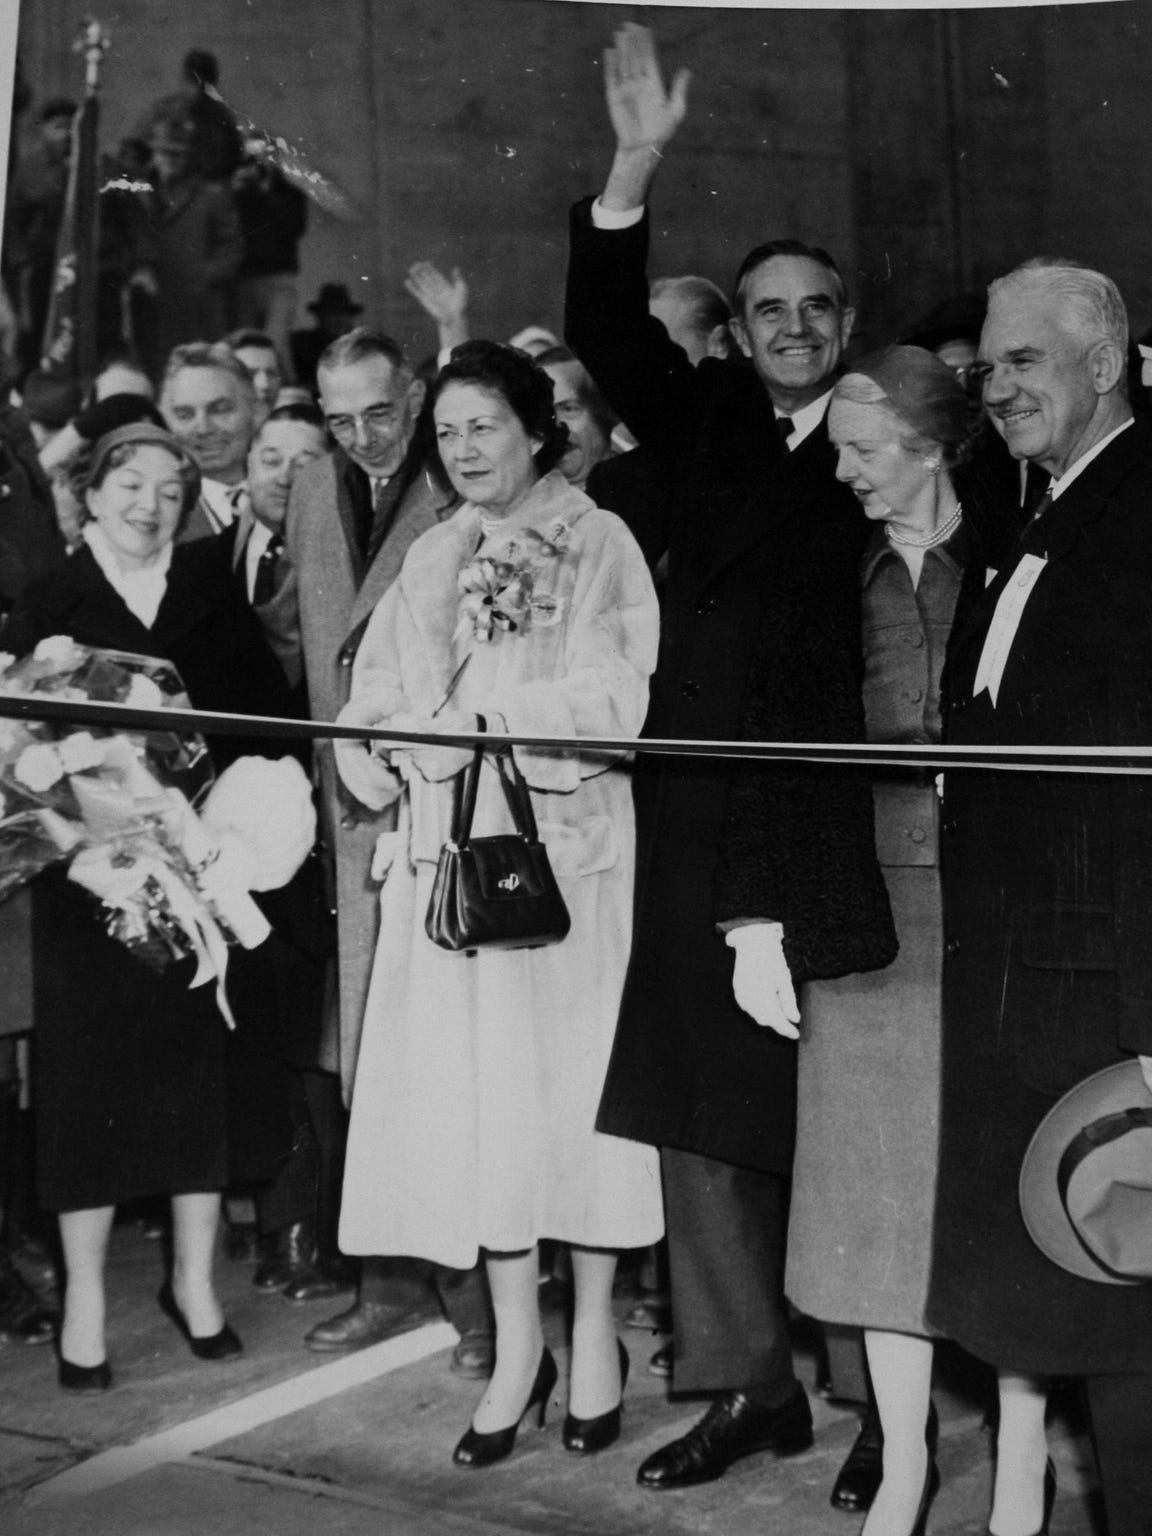 New York Gov. Averell Harriman waving, center, and Helen Hayes MacArthur, holding a bouquet at the far left, at the South Nyack ribbon-cutting that opened the Tappan Zee Bridge on Dec. 15, 1955. Marie Norton Harriman, the governor's wife, cuts the ribbon to open the bridge.